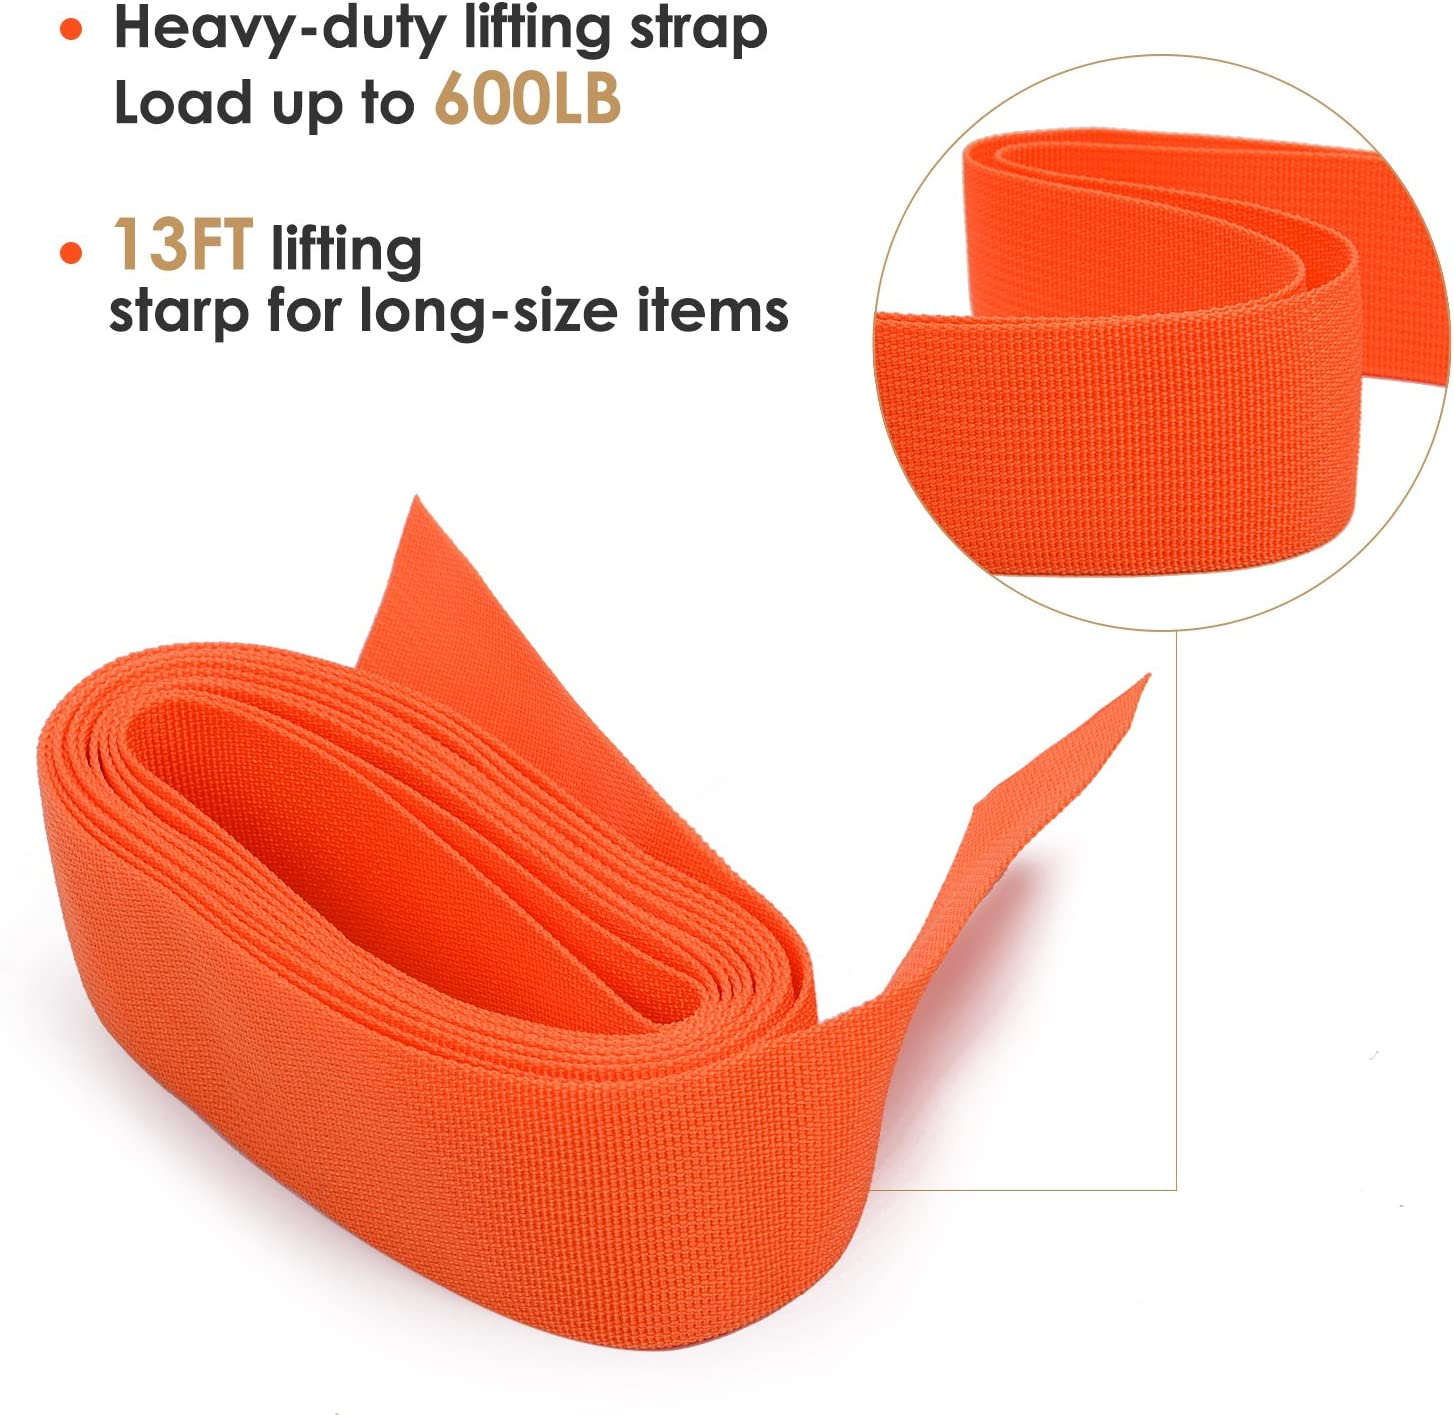 Carry Bag Max Load 600 Pound GOOACC moving straps 13Feet Lifting Straps 2 Person Moving Shoulder Harness Lifter Aid with Foam Pad